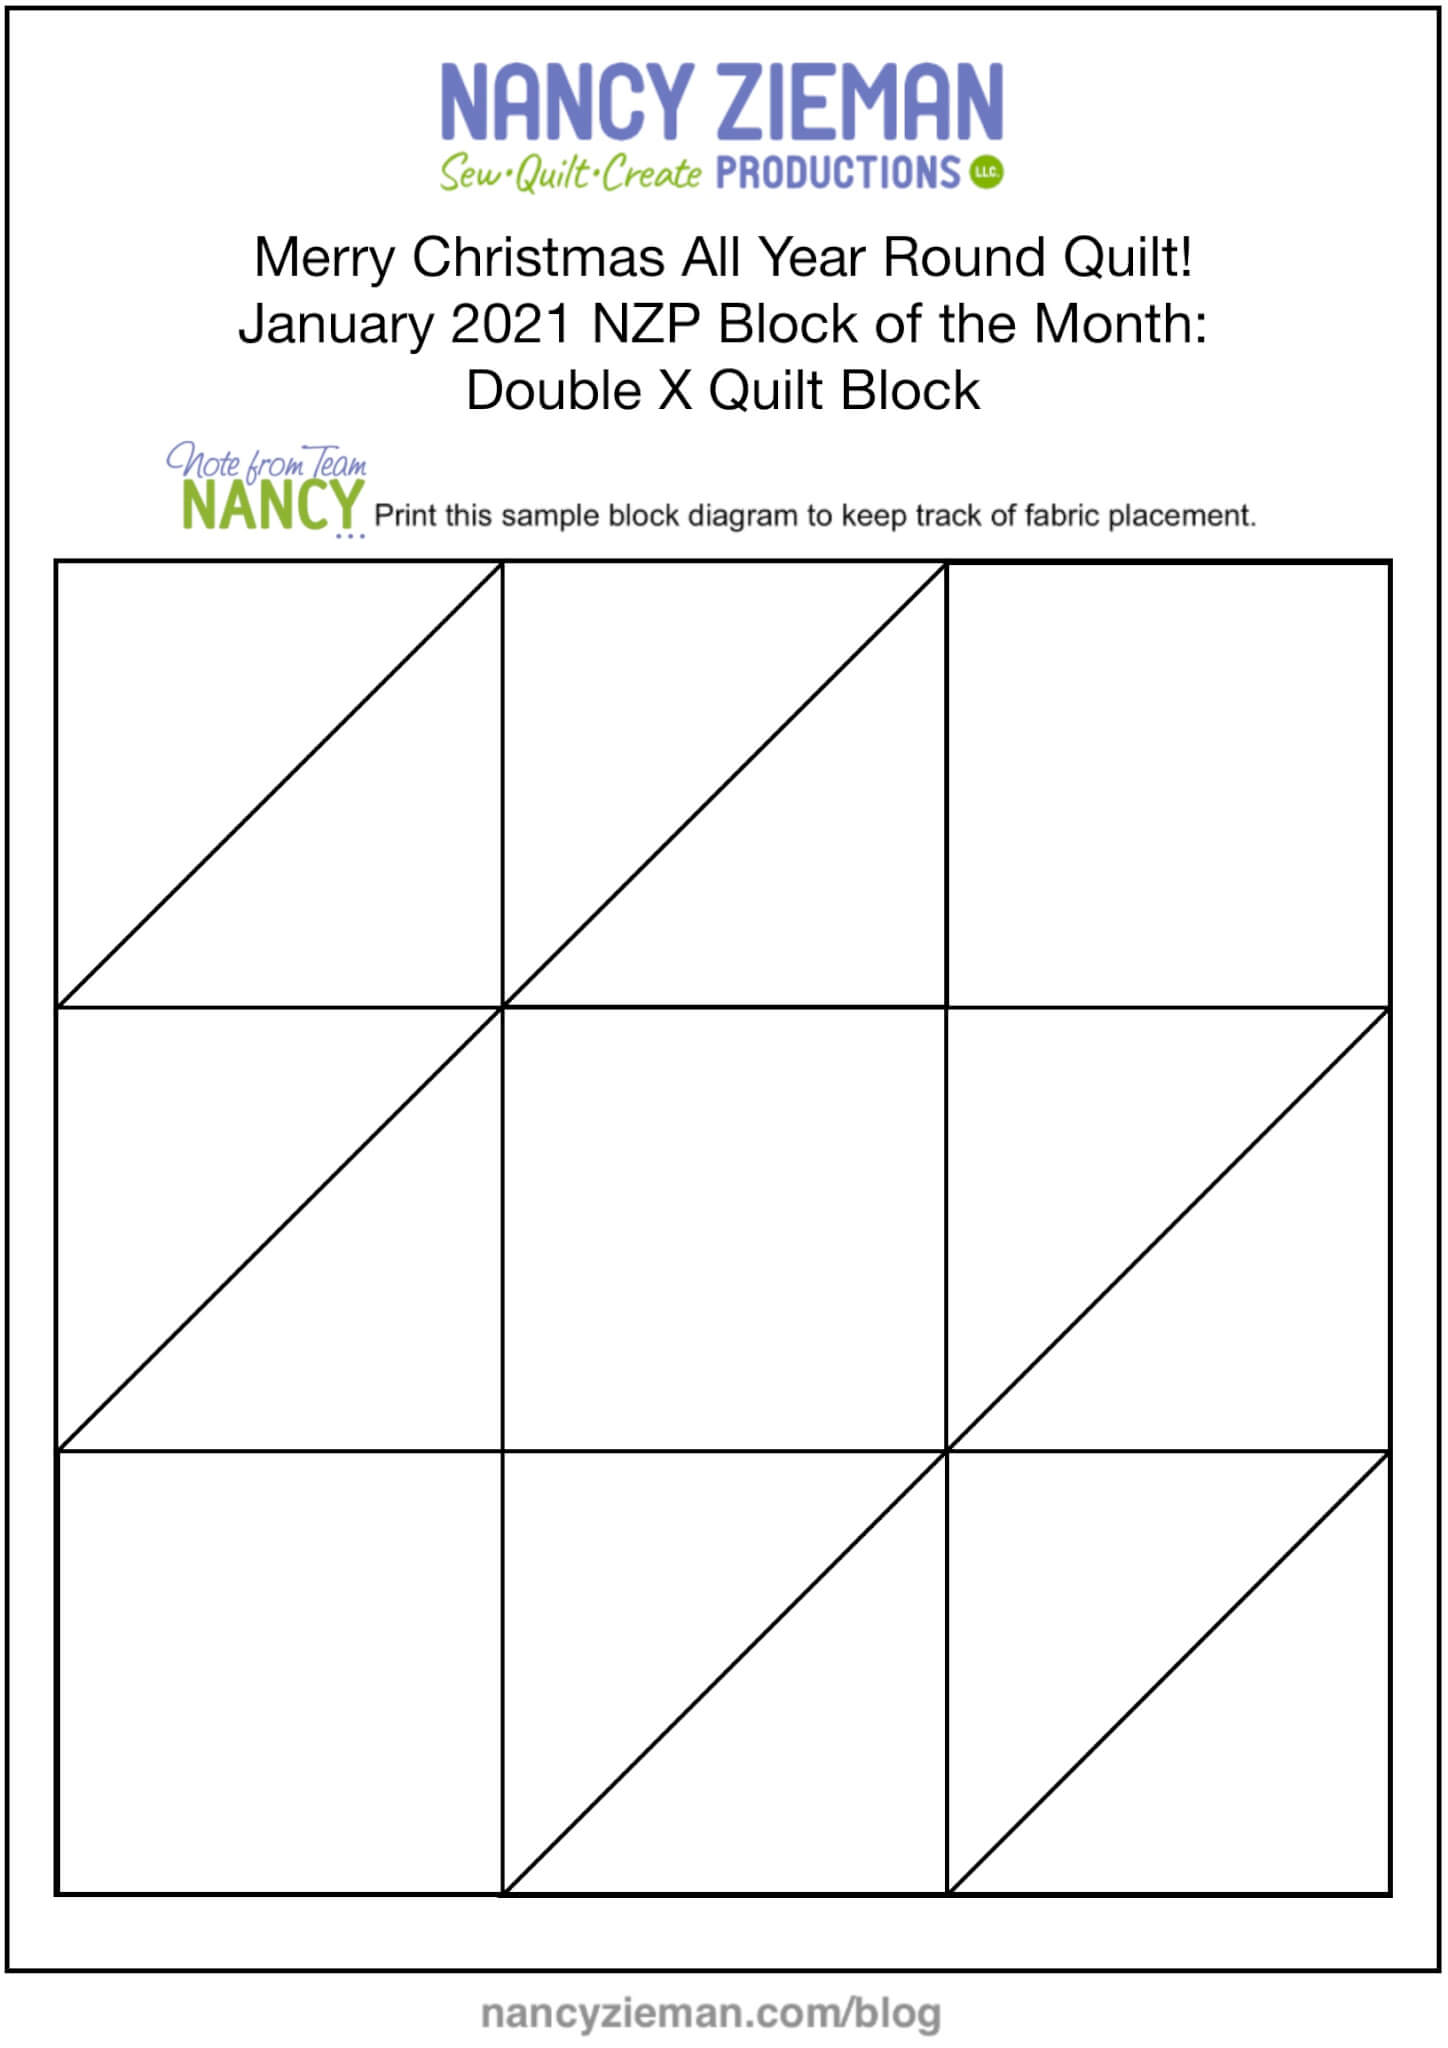 Merry Christmas All Year Round Quilt! January 2021 Block of the Month Double X Quilt Block PDF